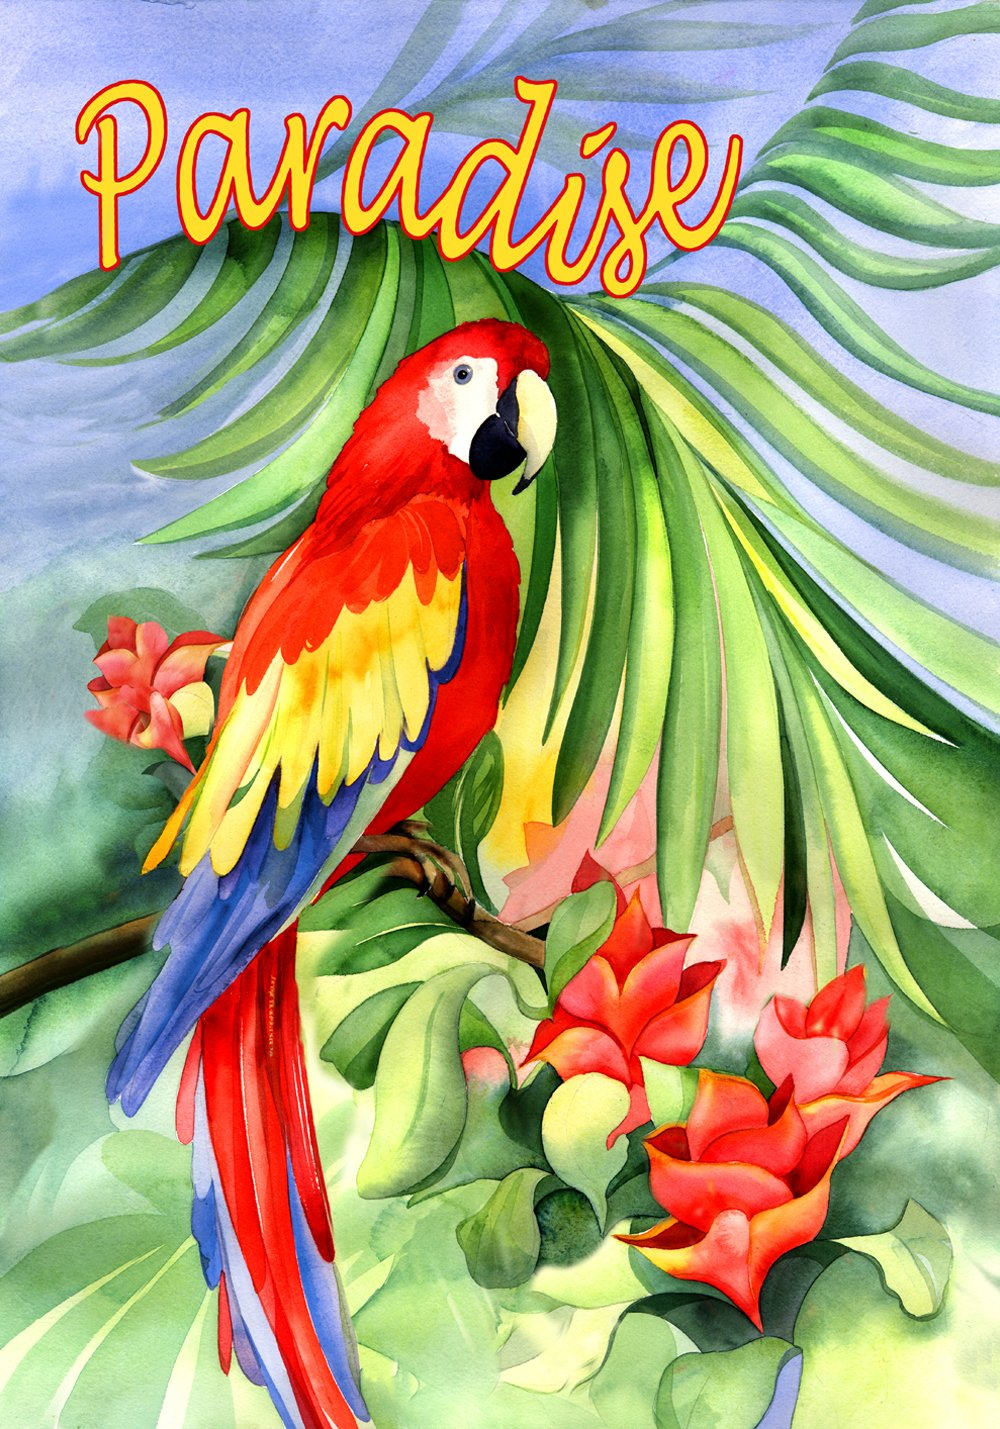 Toland Home Garden Macaw Paradise 12.5 x 18 Inch Decorative Colorful Tropical Flower Exotic Jungle Bird Garden Flag